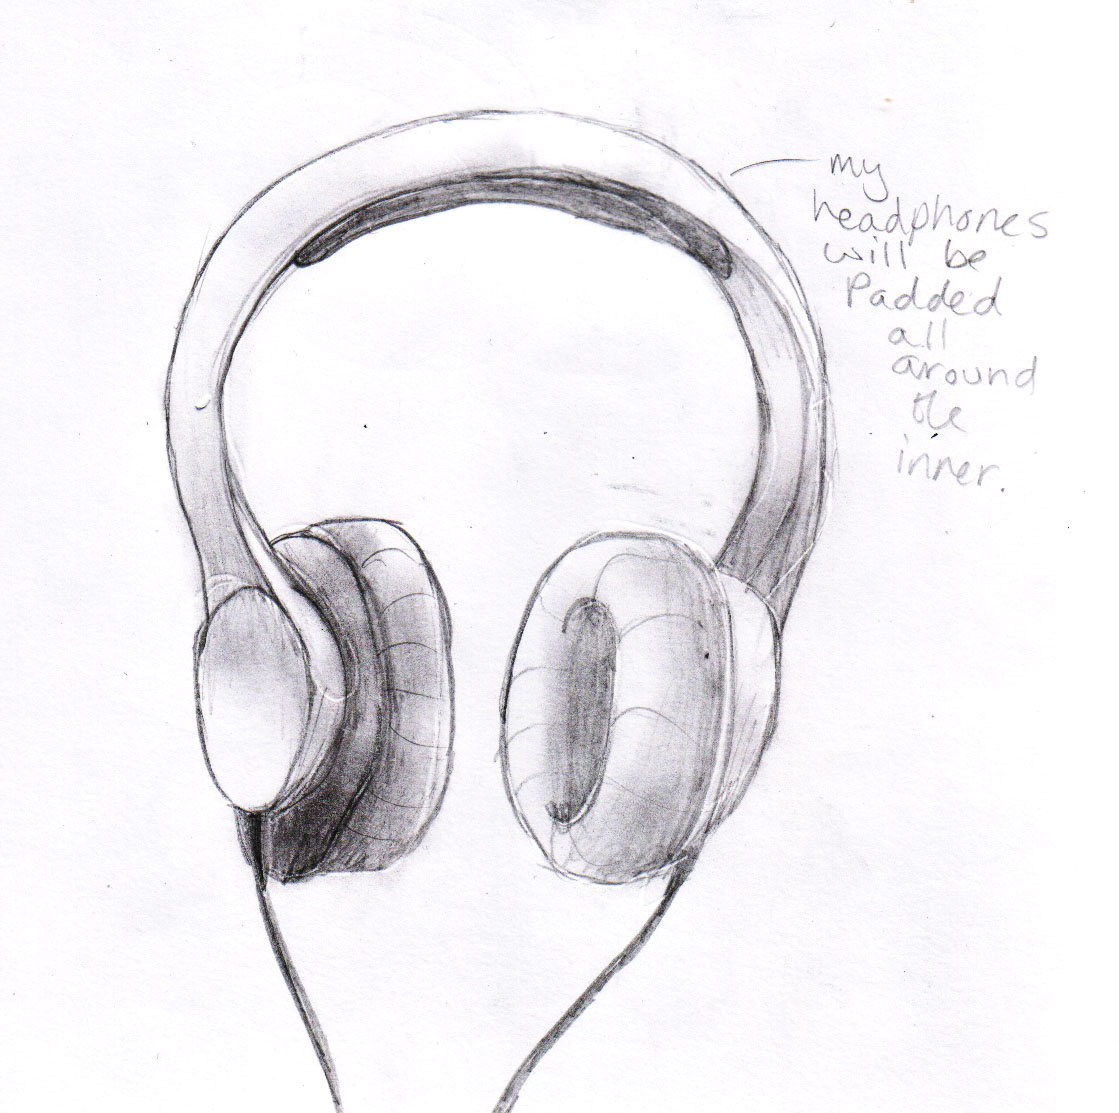 These are just some drawings of headphones and headphone shapes to give me an idea about how they look and all that jazz i researched how they are made by